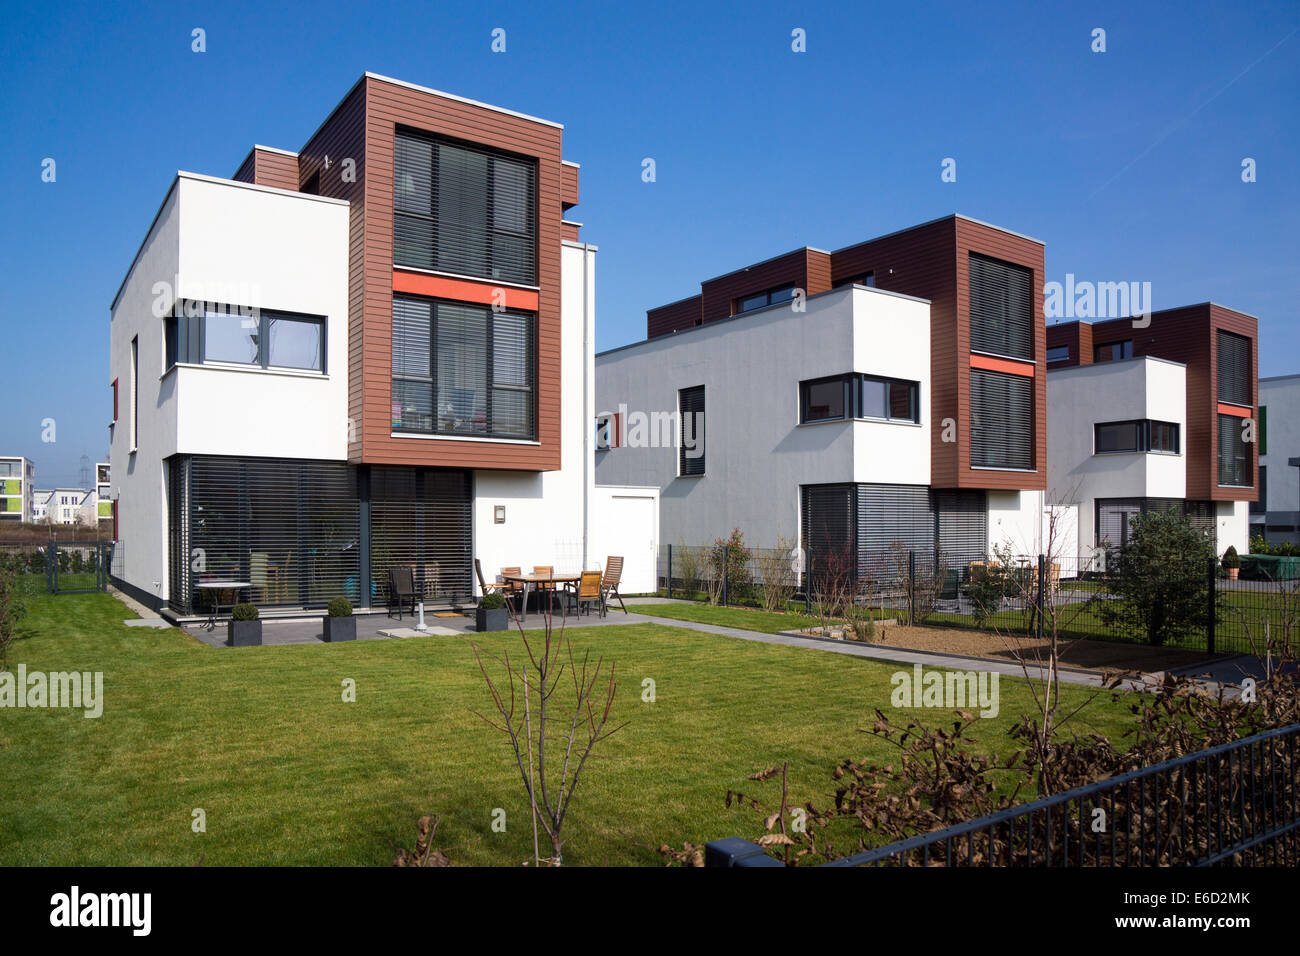 Family house, modern architecture in the Bauhaus style, Riedenberg,  Frankfurt am Main, Hesse, Germany